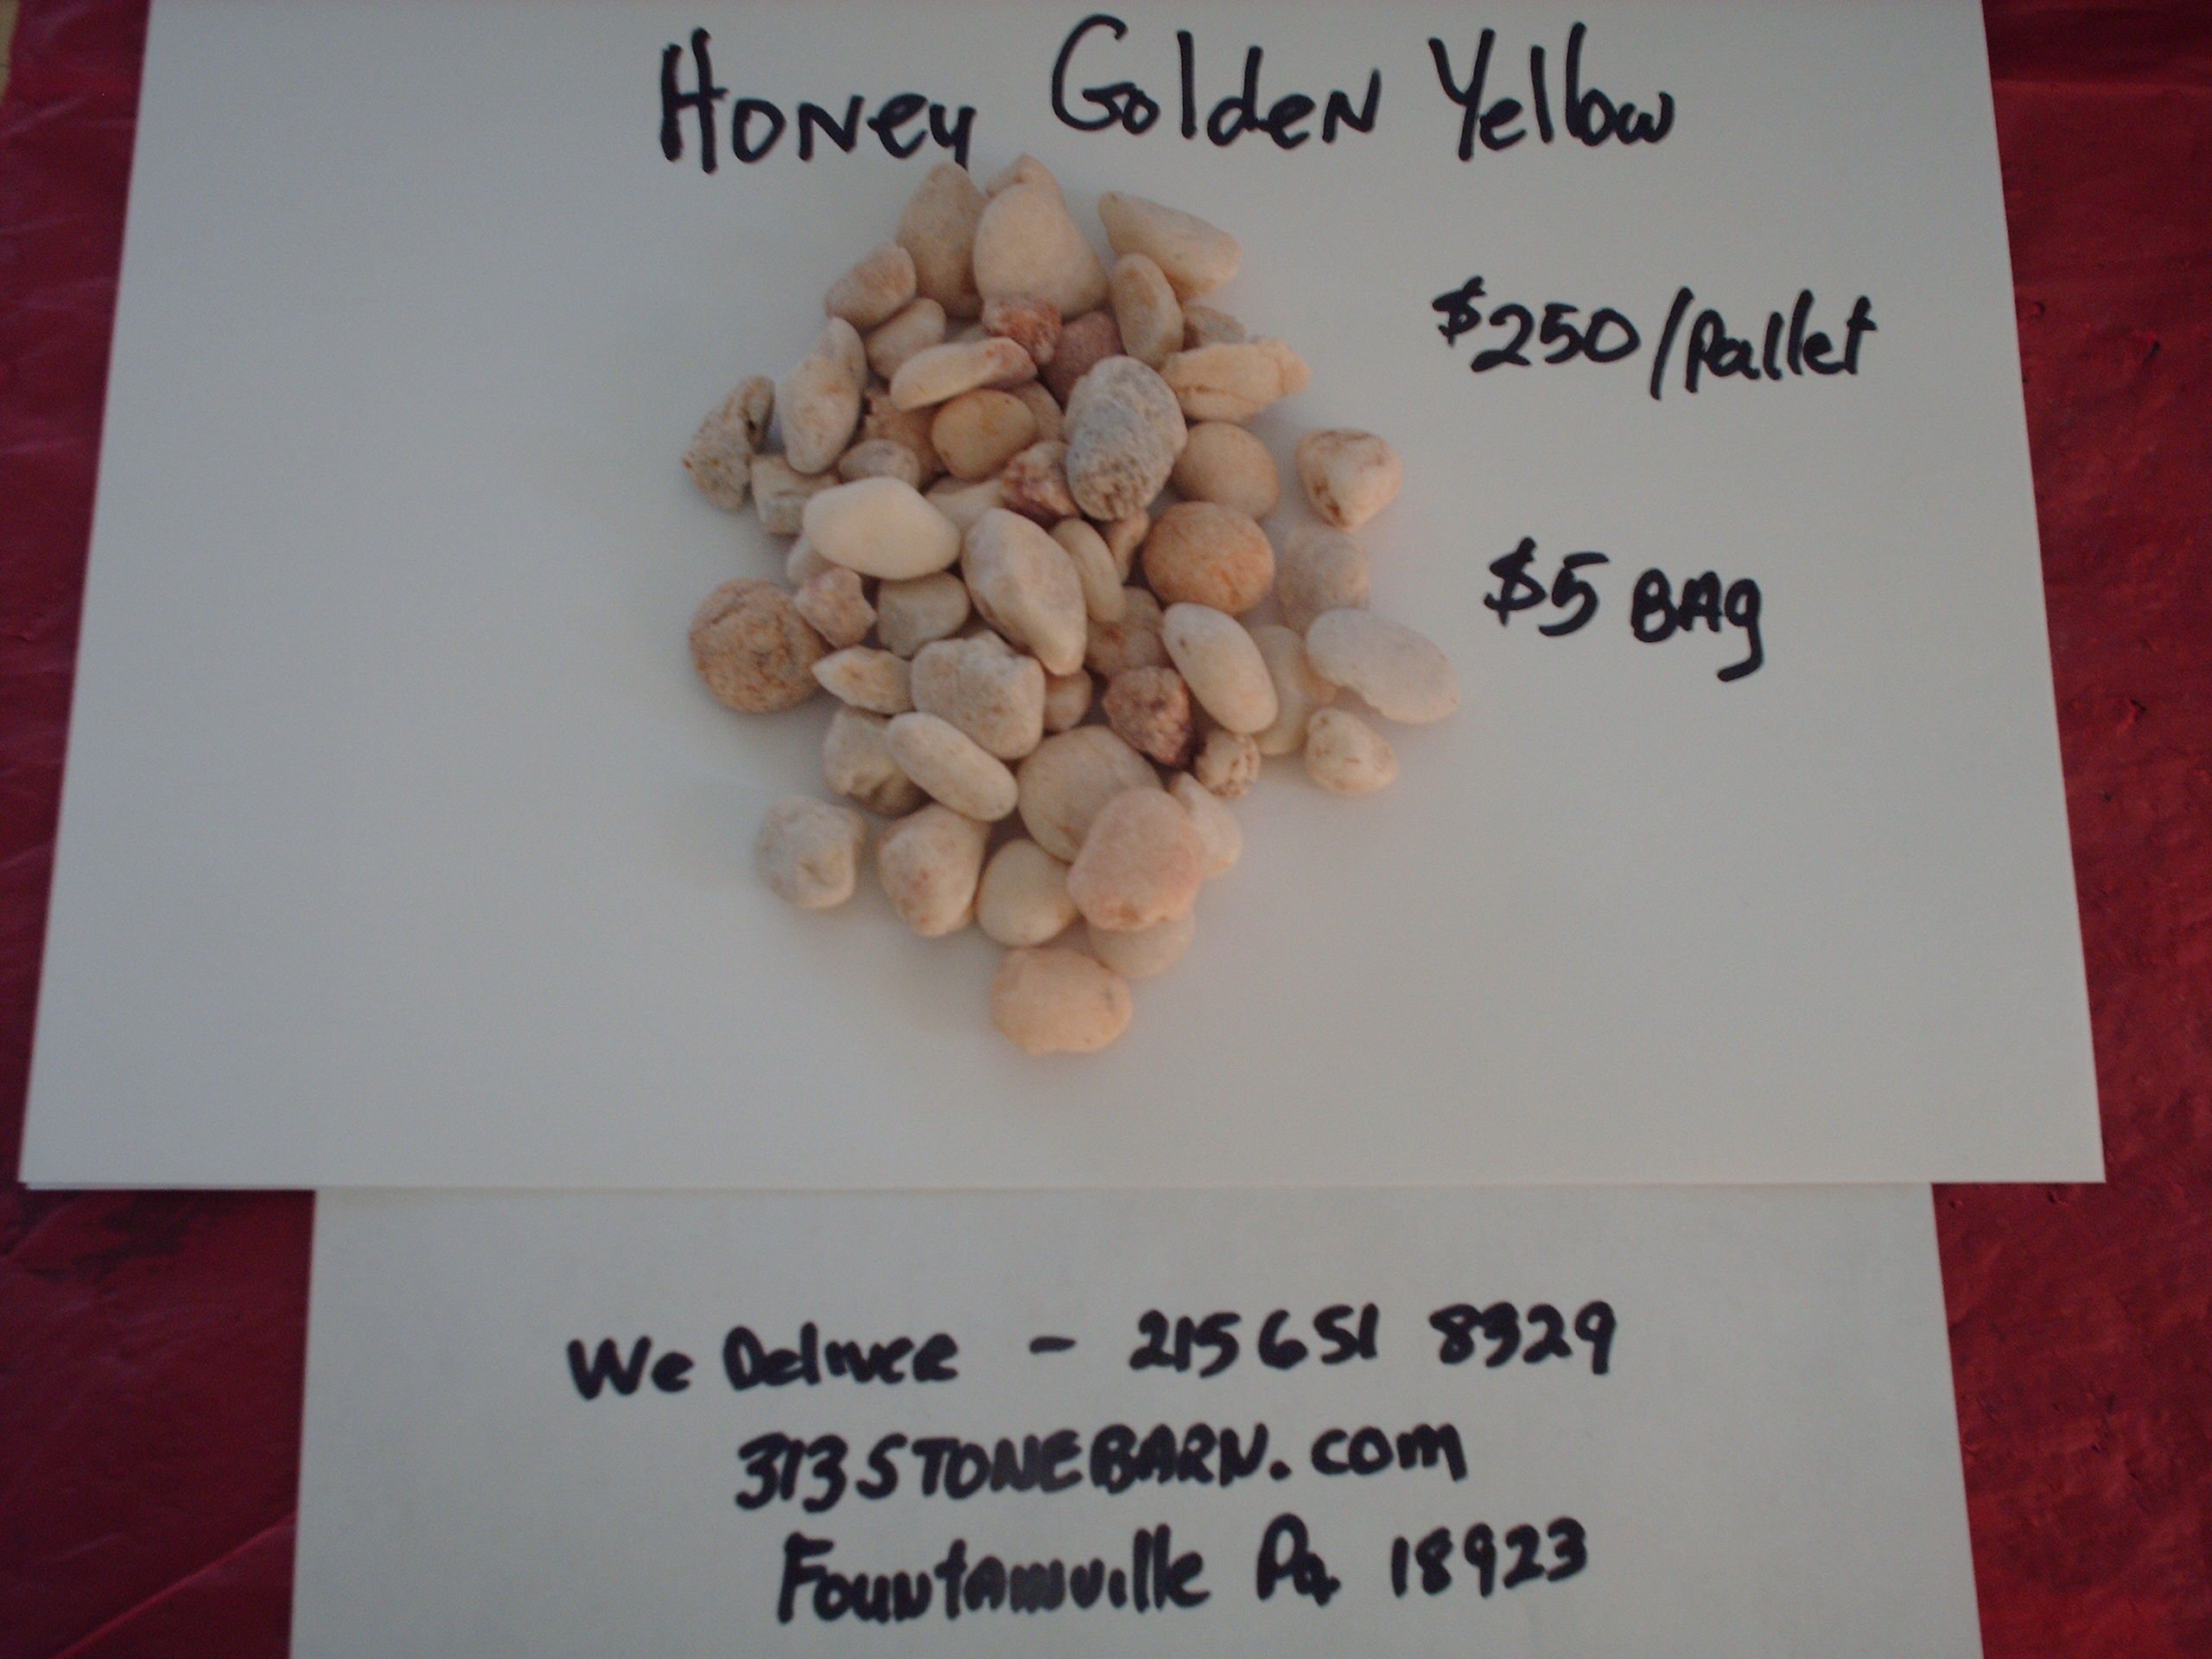 We deliver pallets of these Honey Golen Yellow Stones.